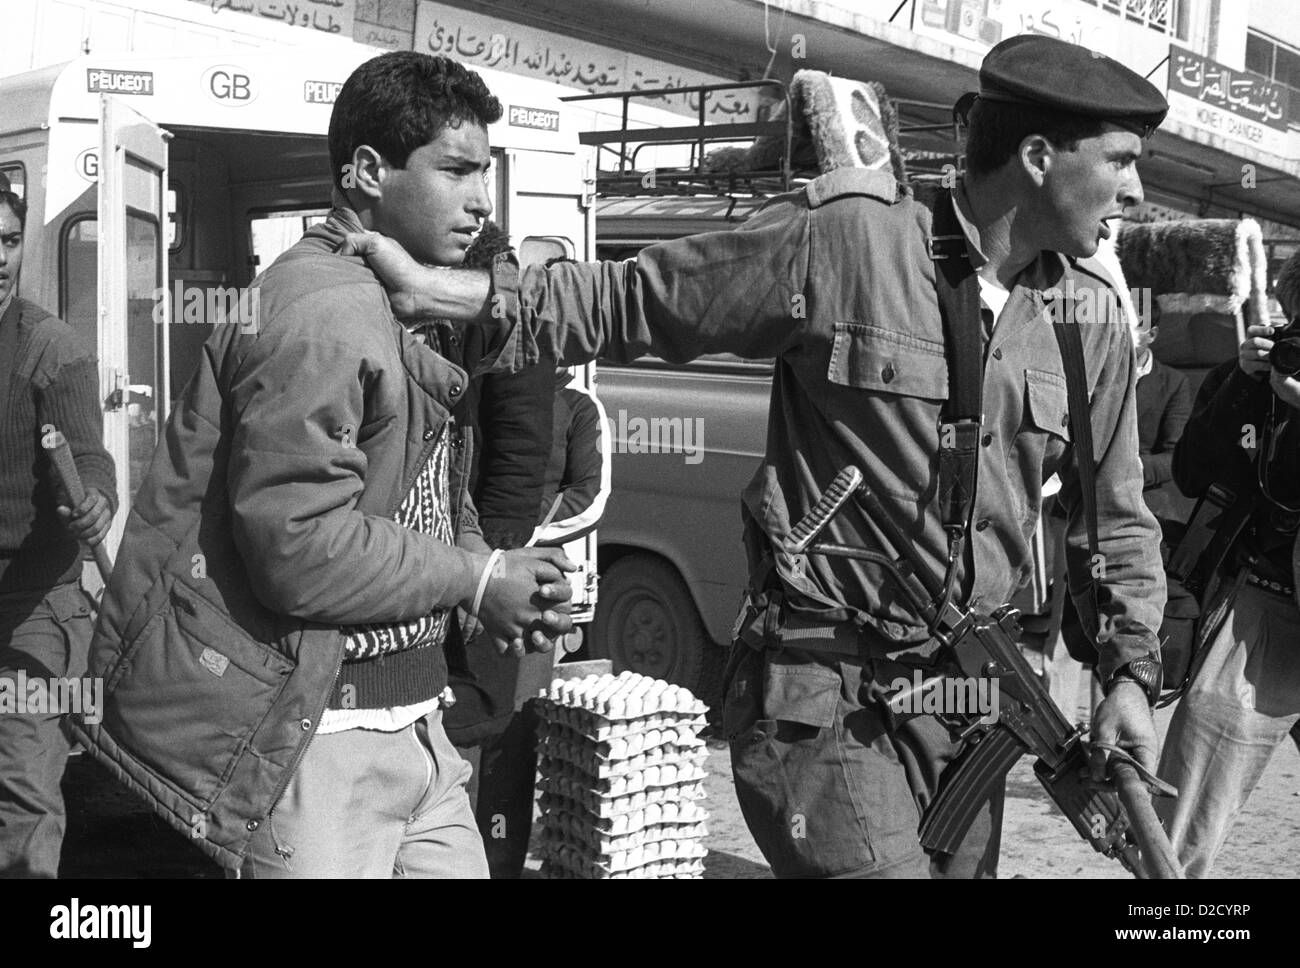 1988 Ramallah. Palestinian arrested for allegedly throwing stones at the beginning of the Palestinian Intifada. - Stock Image